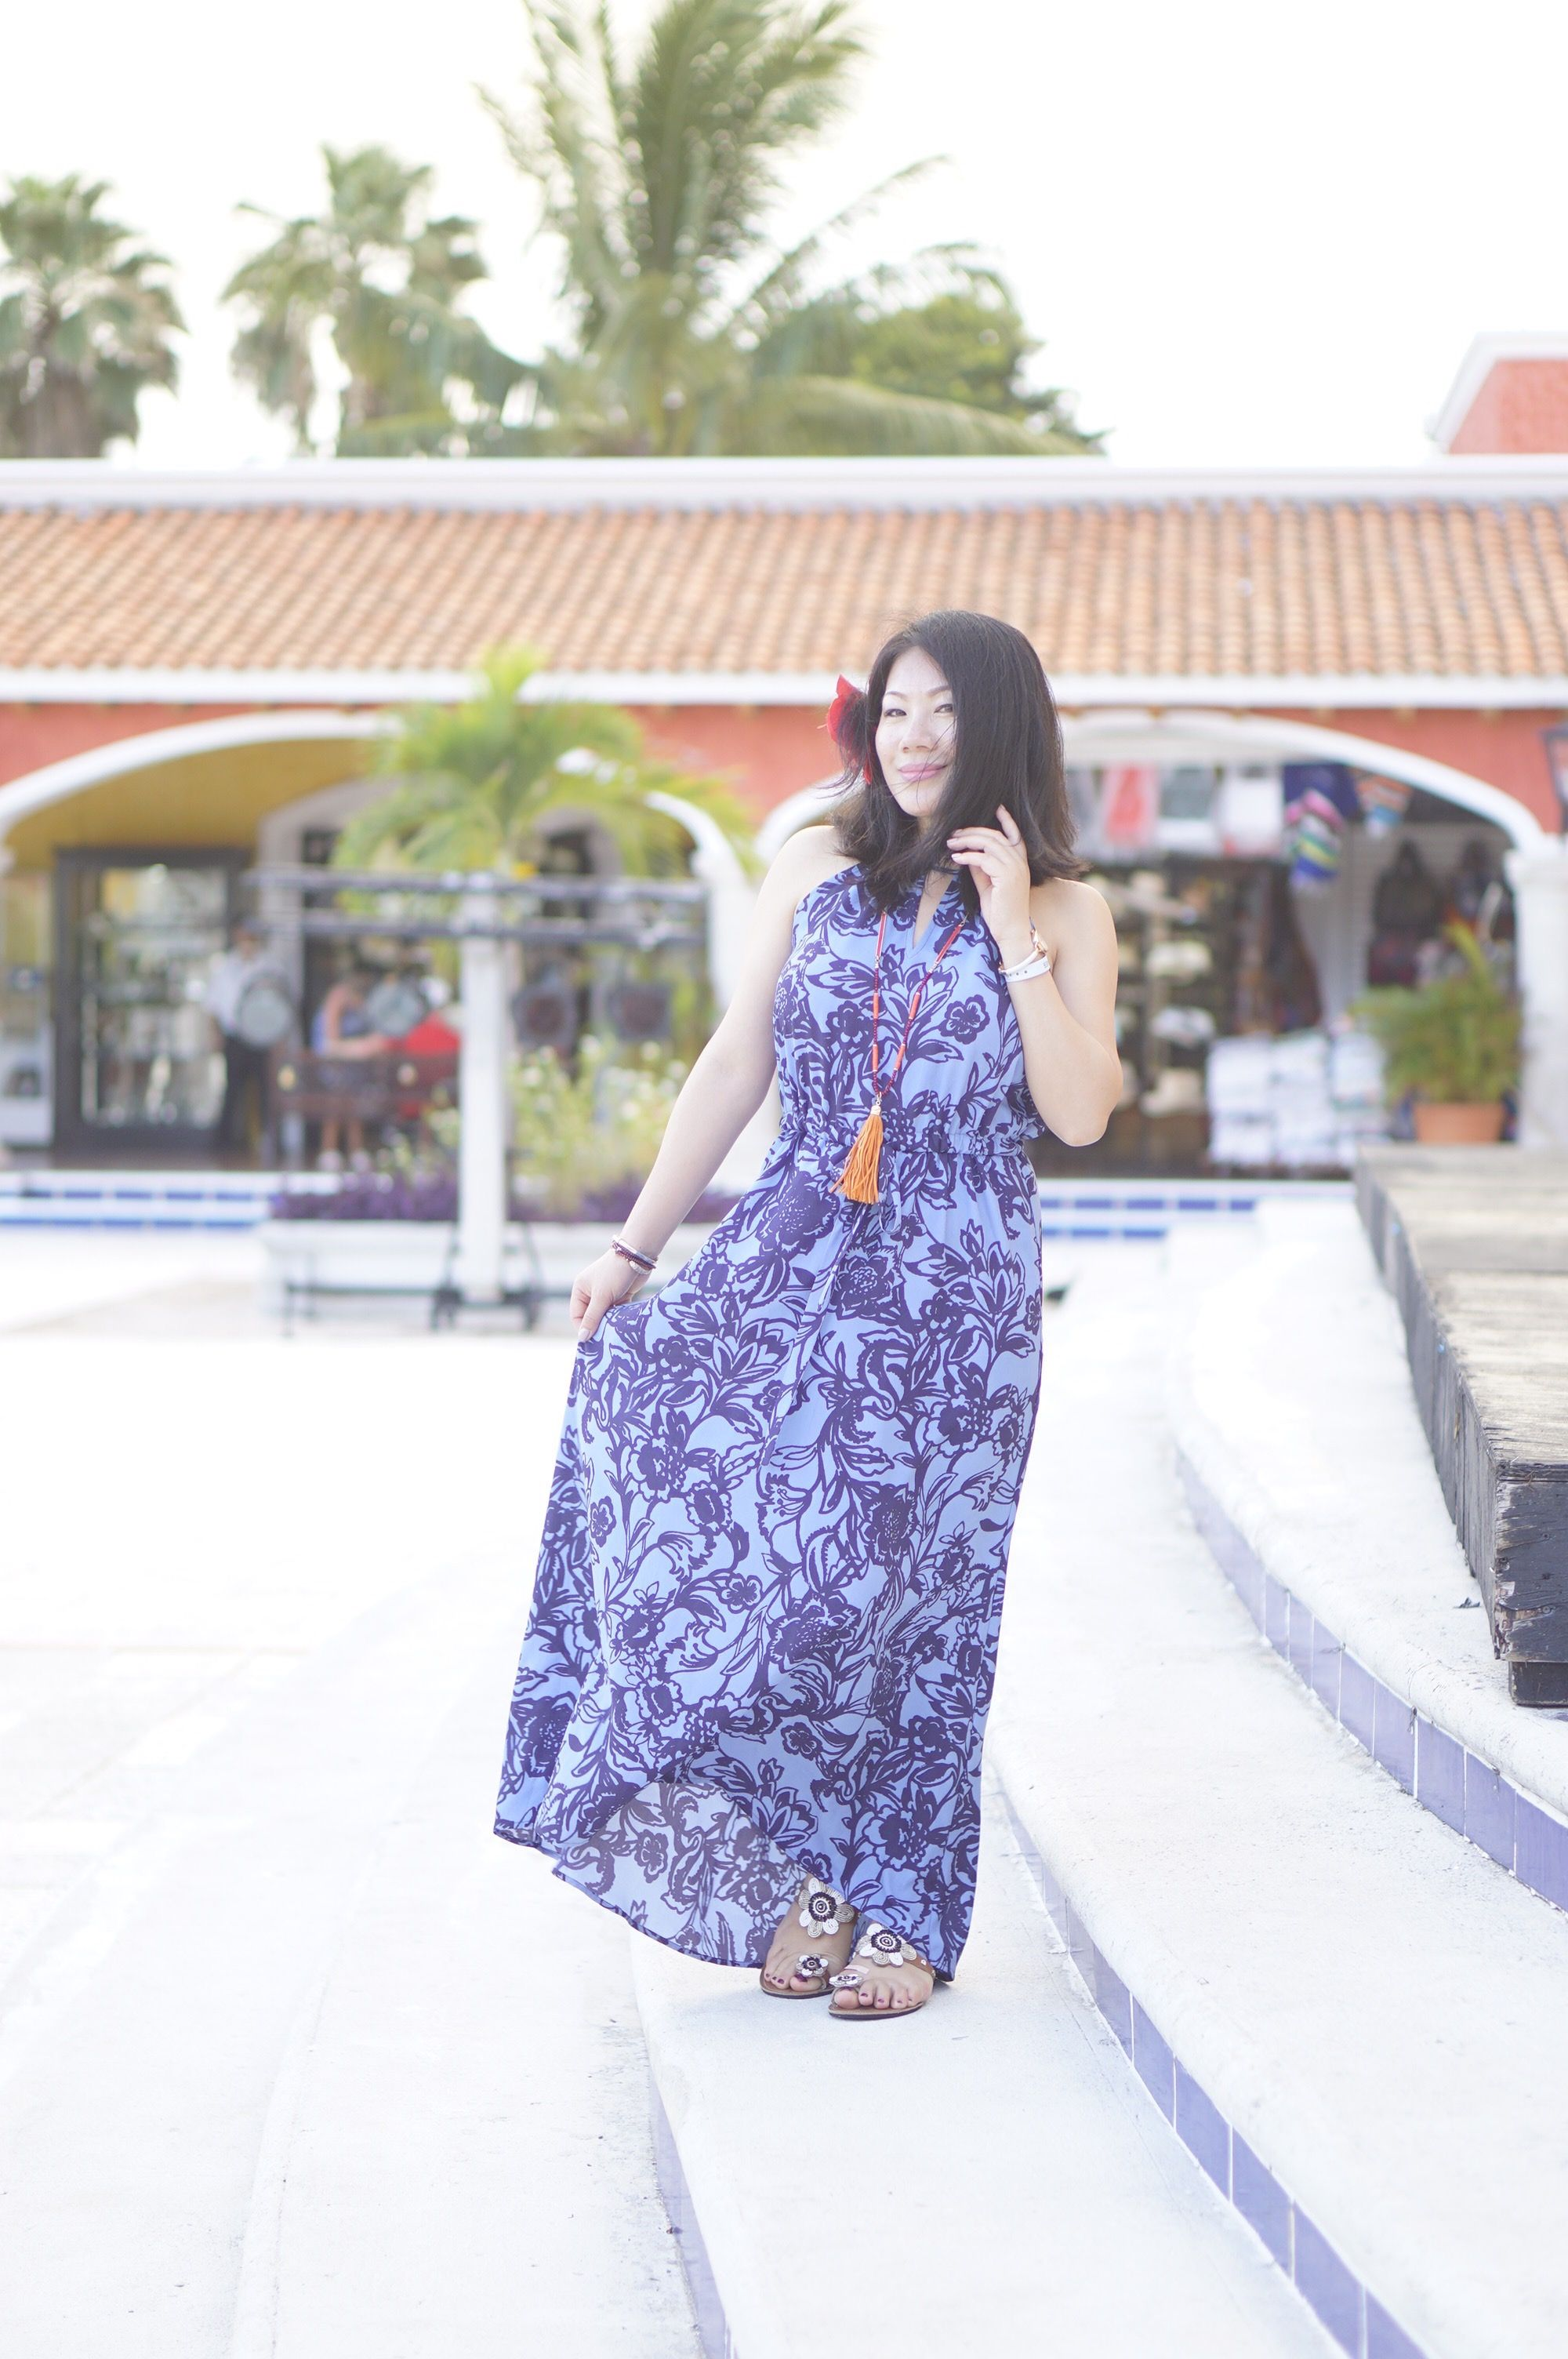 4b82088c8ae2 2016 beach vacation look petite over 40 style Loft blue floral maxi dress